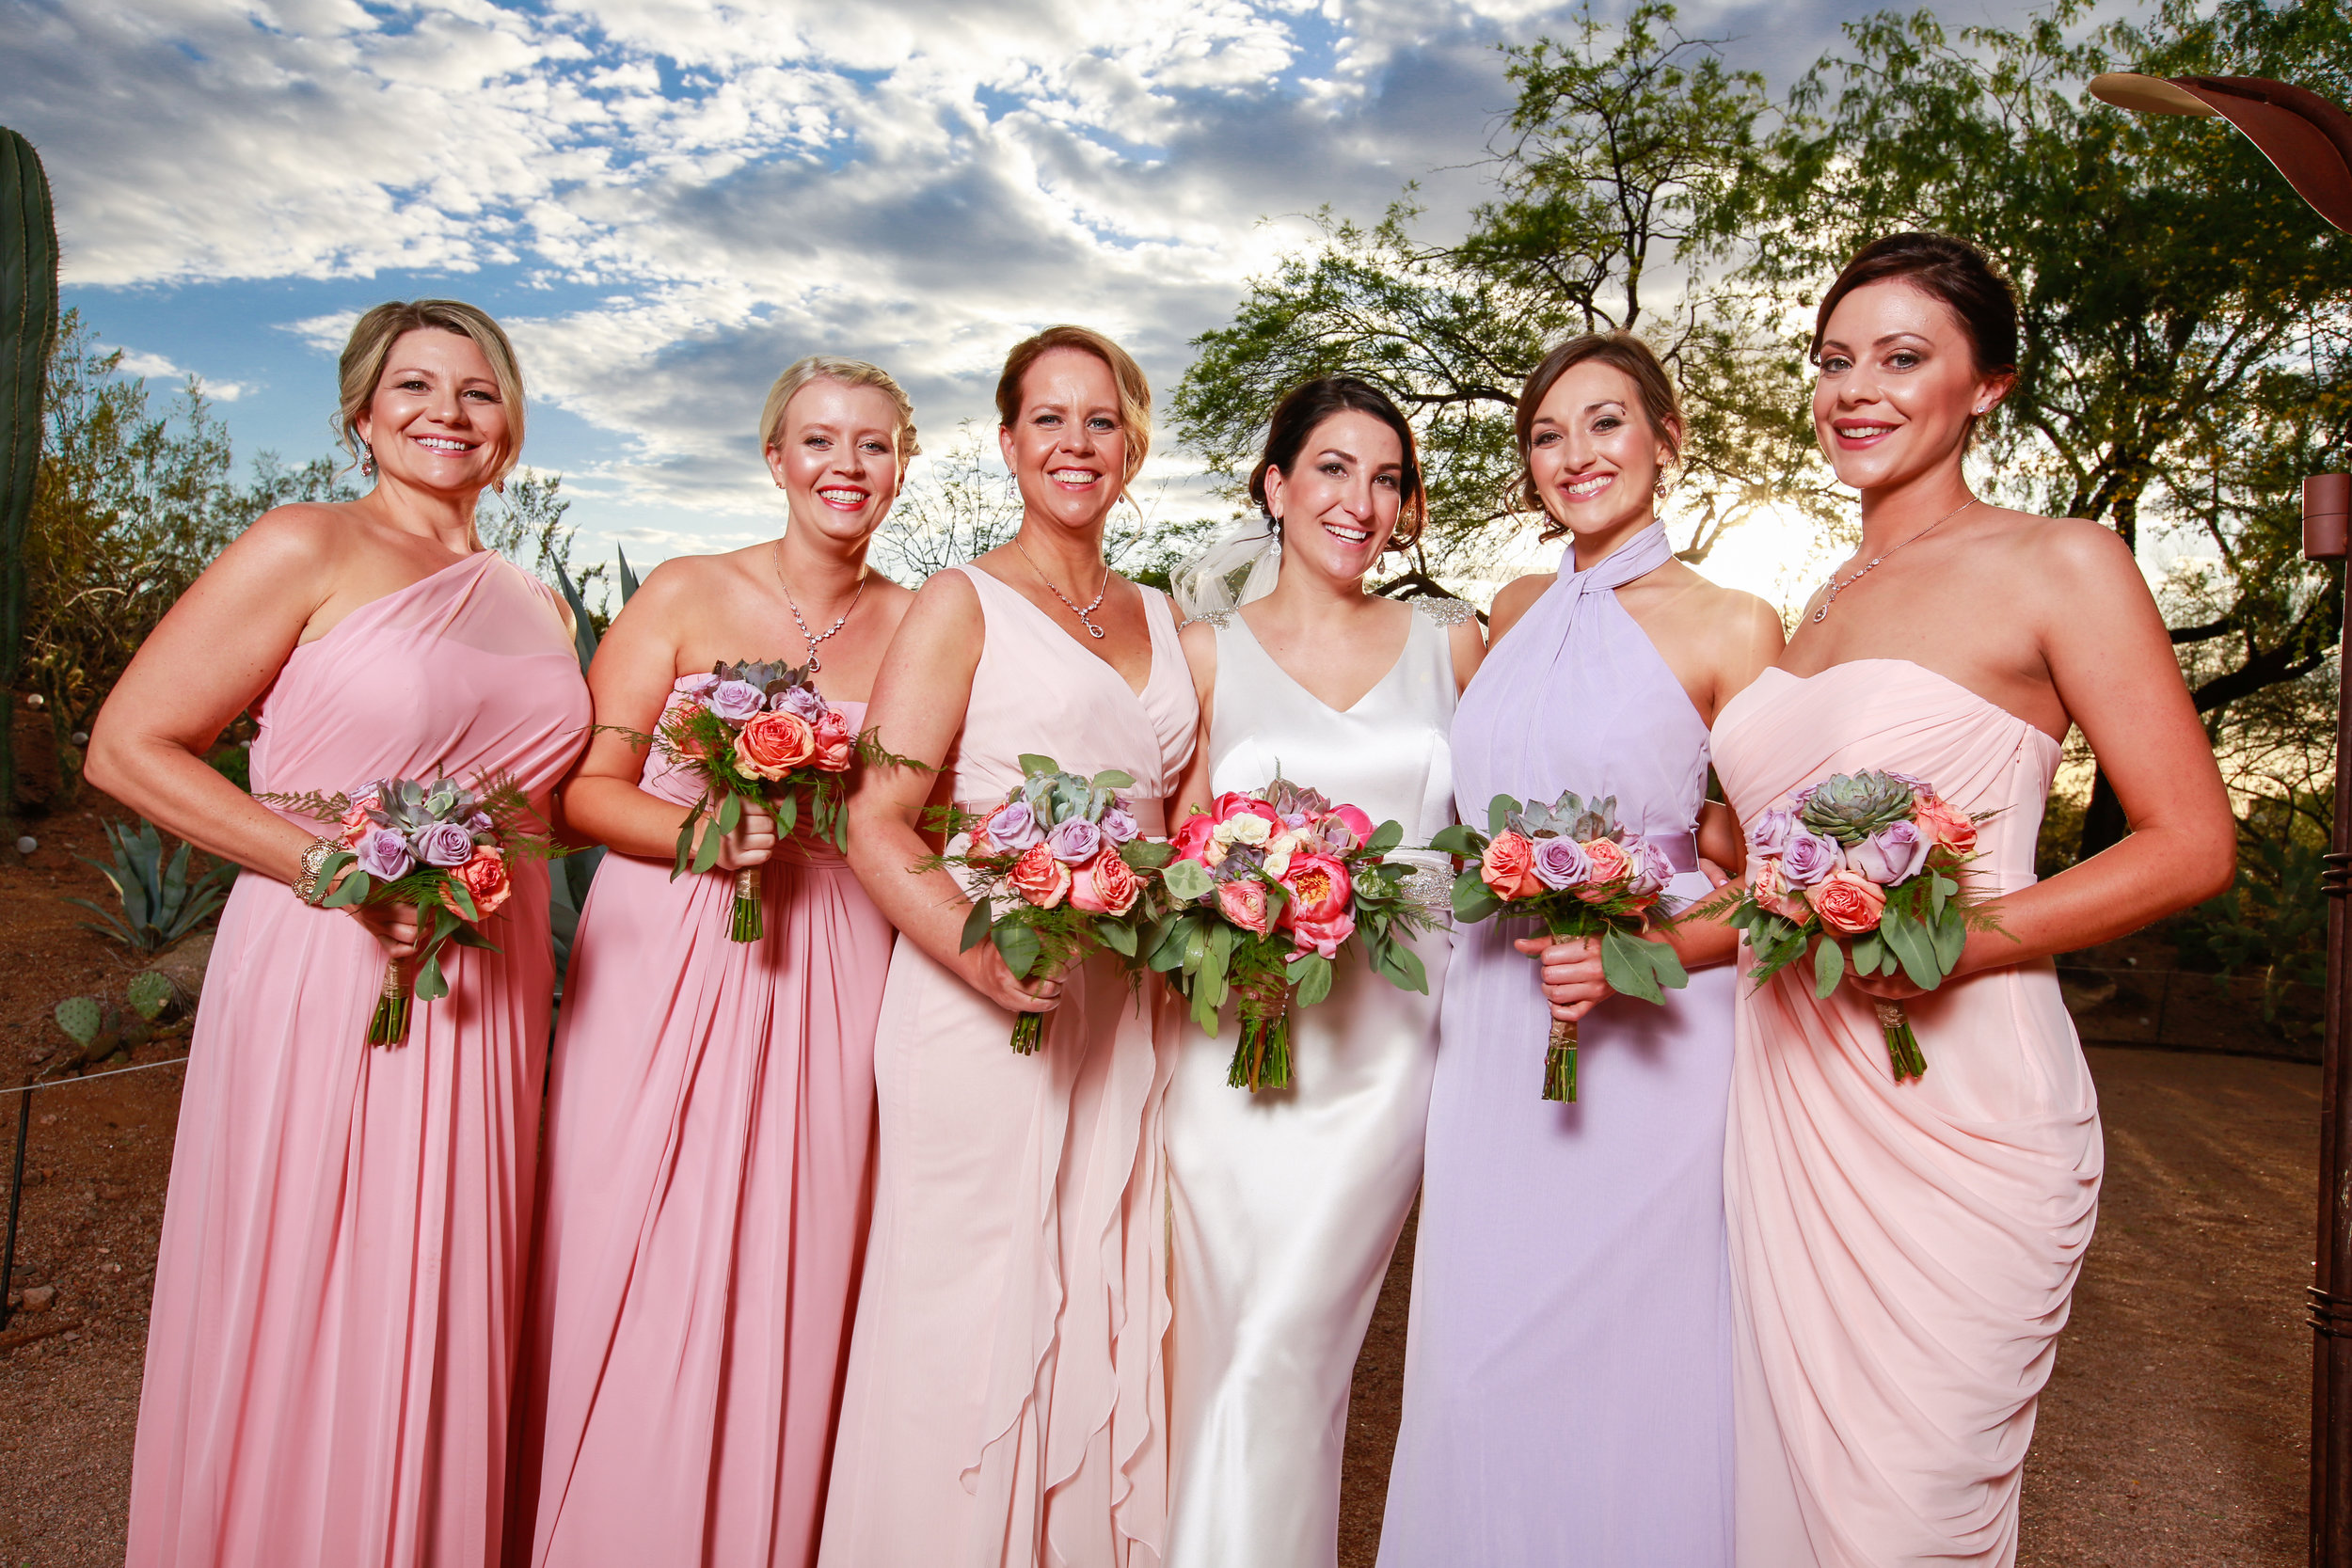 22 bride with bridesmaids simple bridesmaid dresses elegant bridesmaid dresses pink bridesmaid dresses purple and pink rose bouquets Mod Wed Photography Life Design Events.jpg